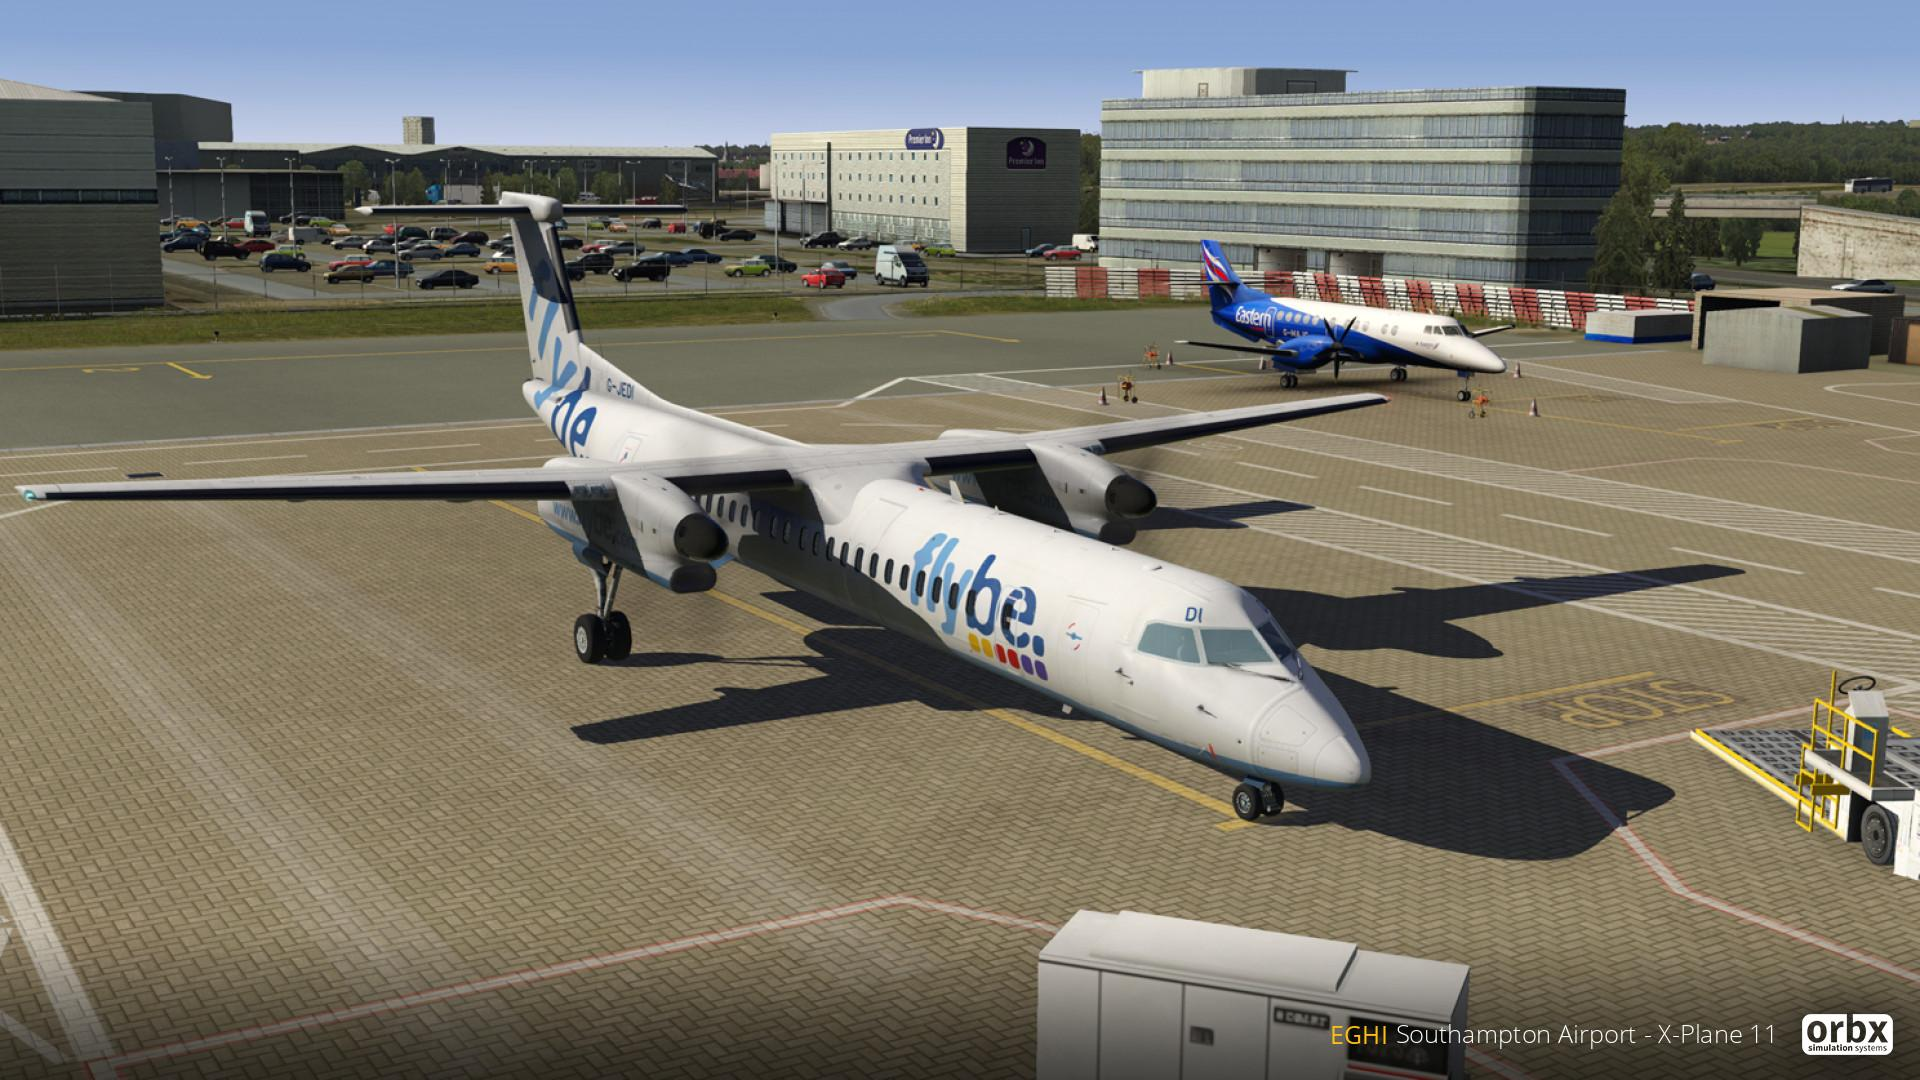 announcement] Explore EGHI Southampton Airport in X-Plane 11